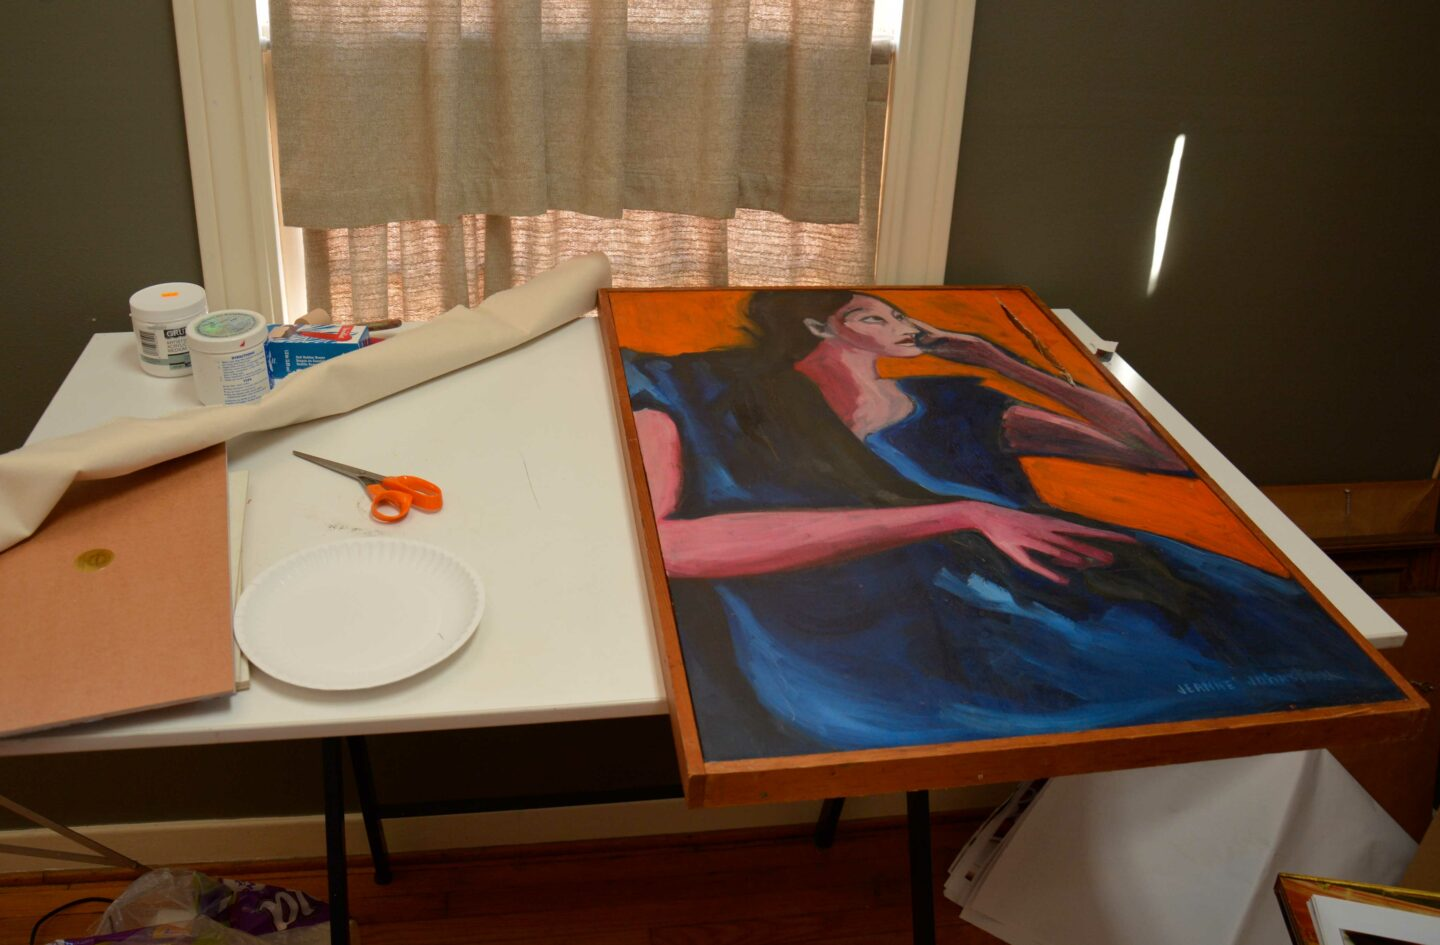 Tools to repair a damaged painting.